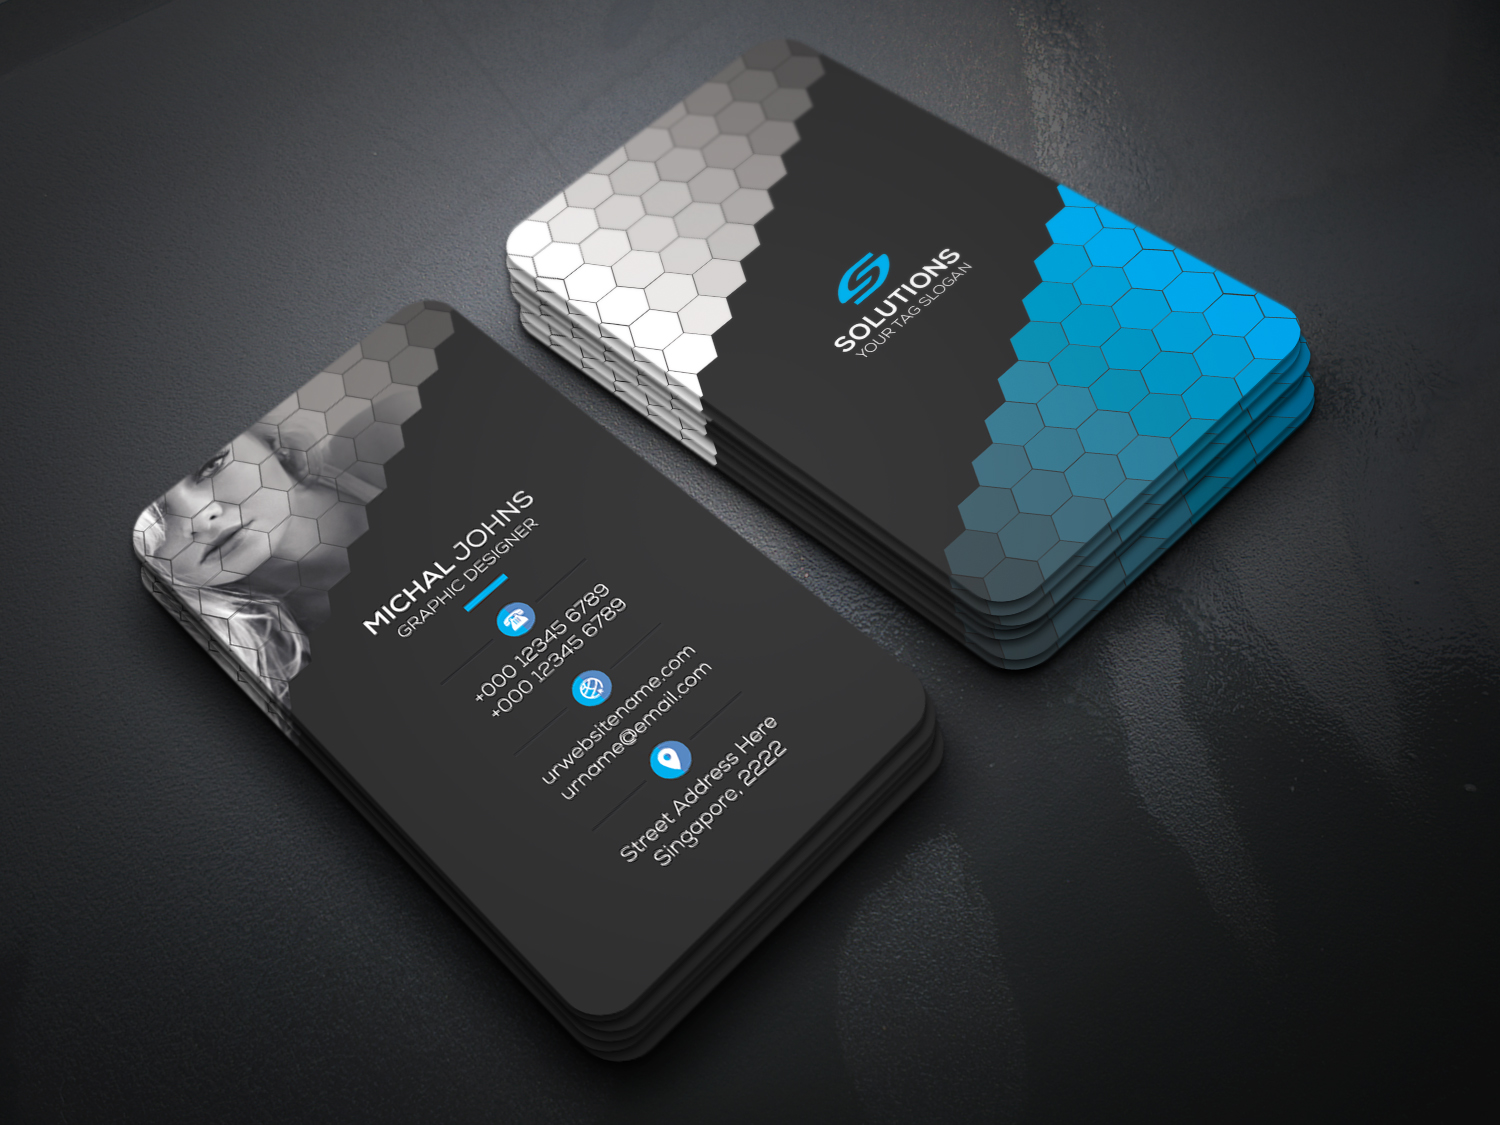 free business card mockup template, free download business card template